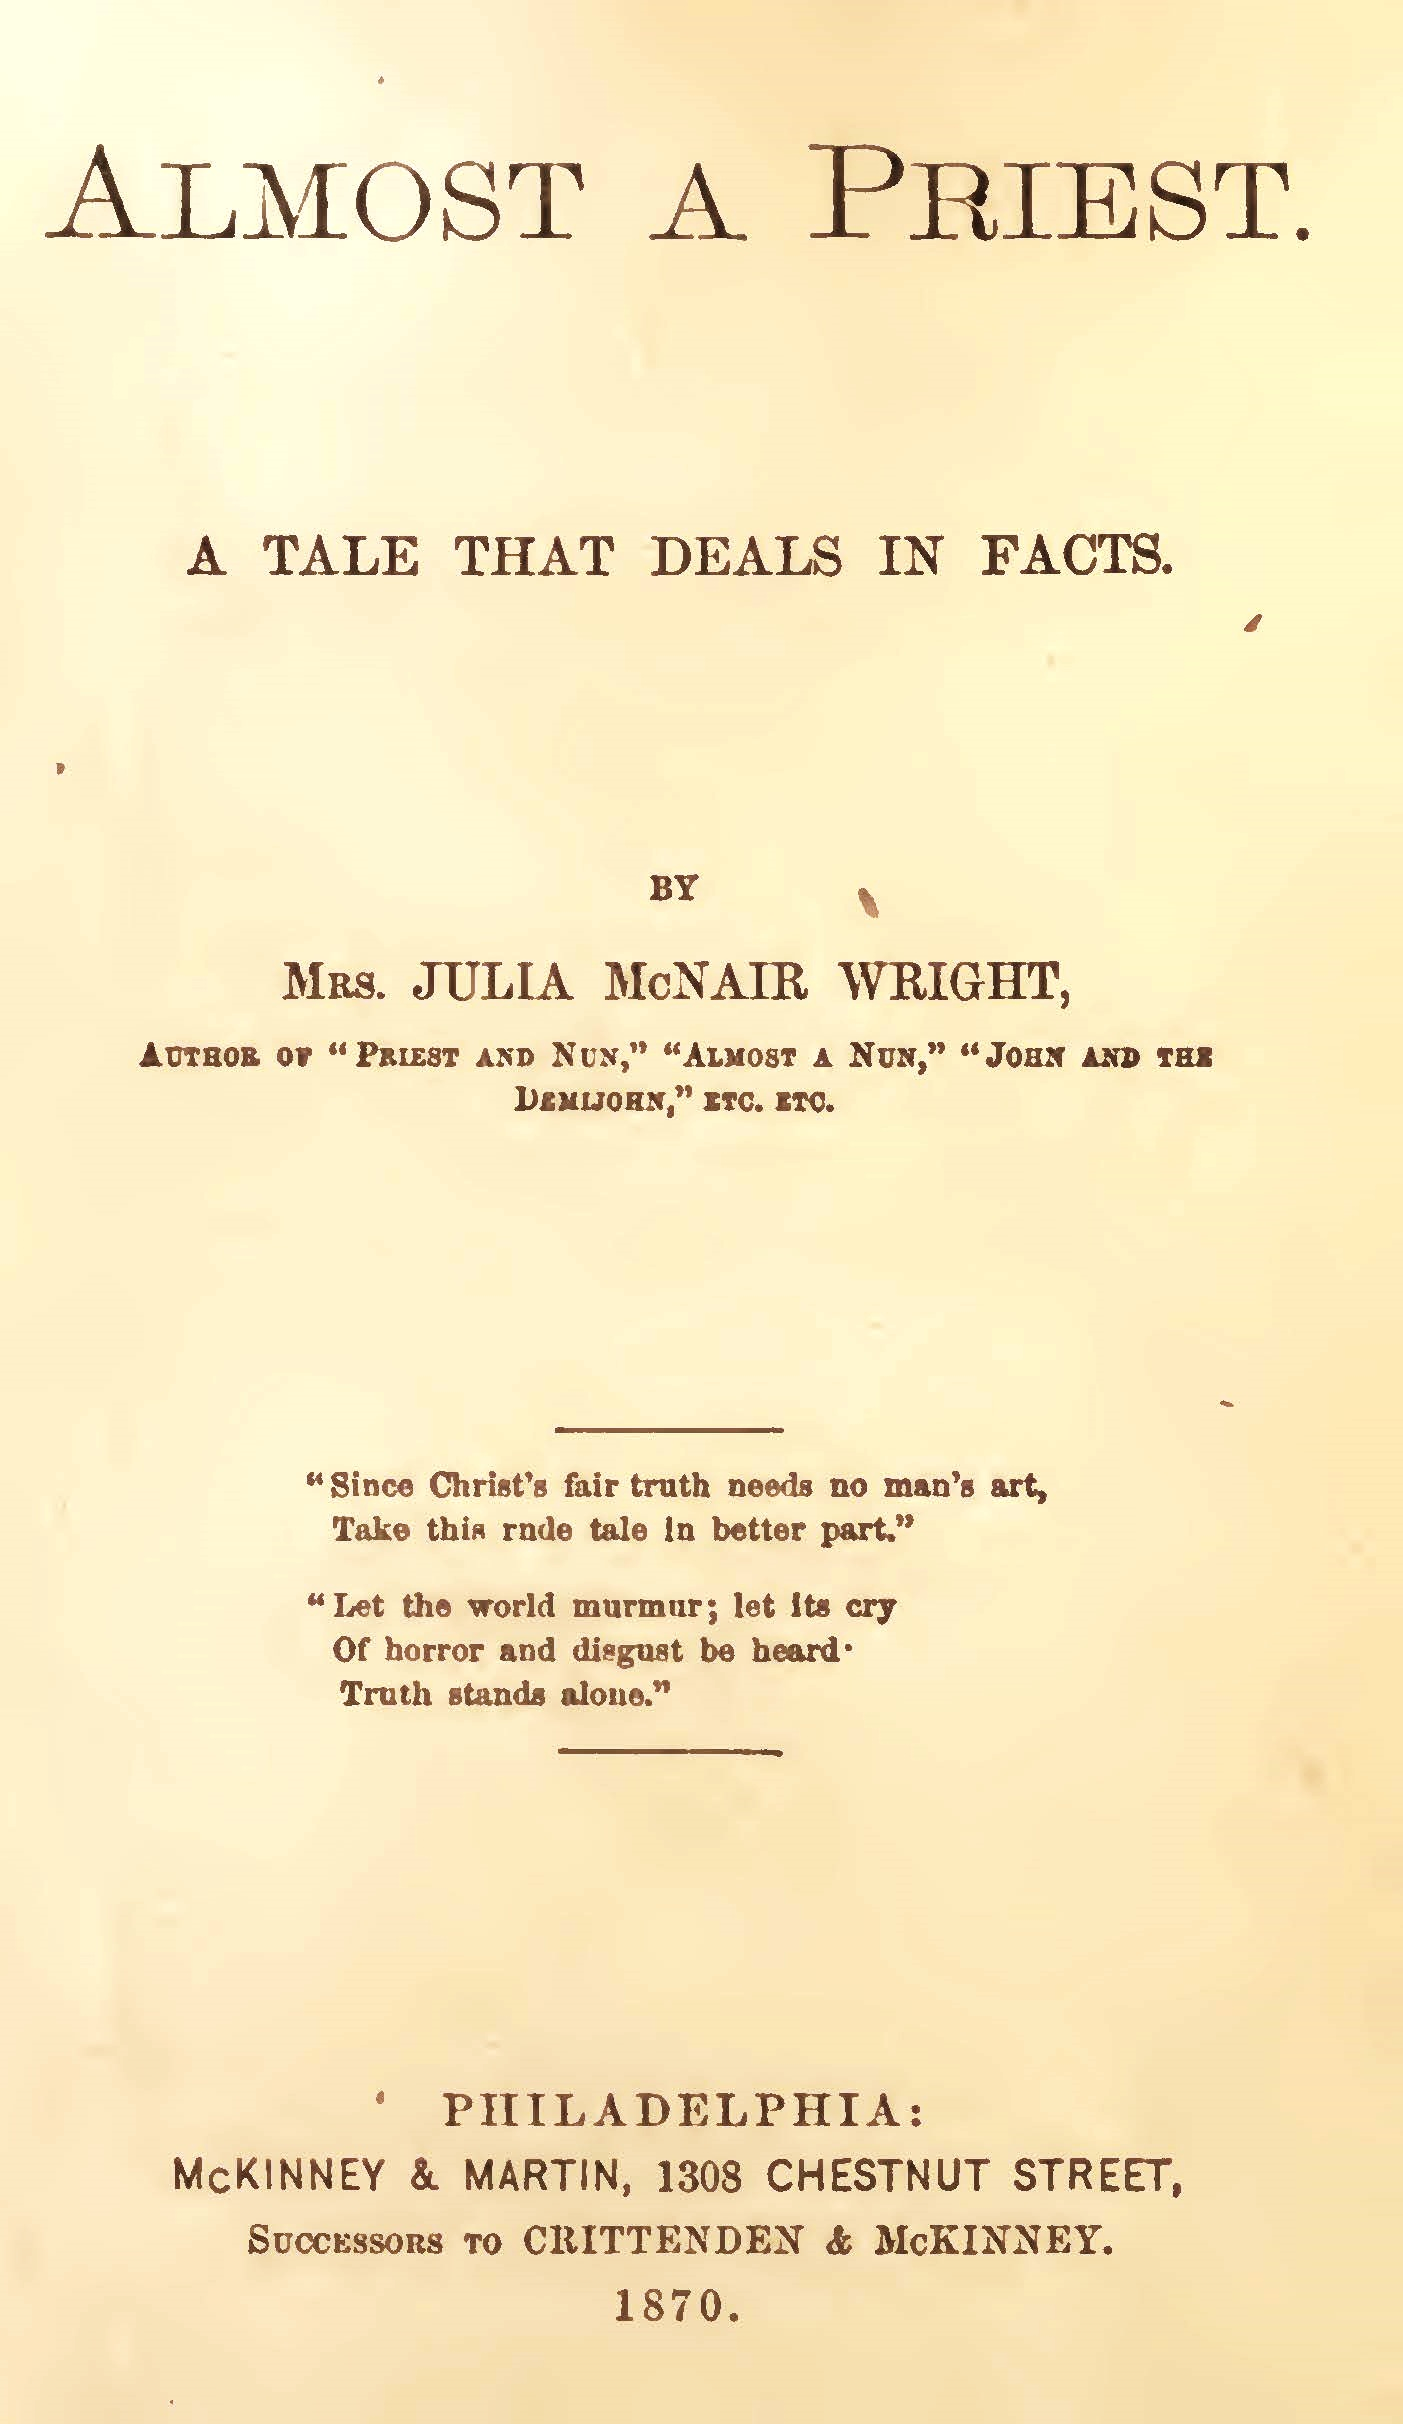 Wright, Julia McNair, Almost a Priest Title Page.jpg